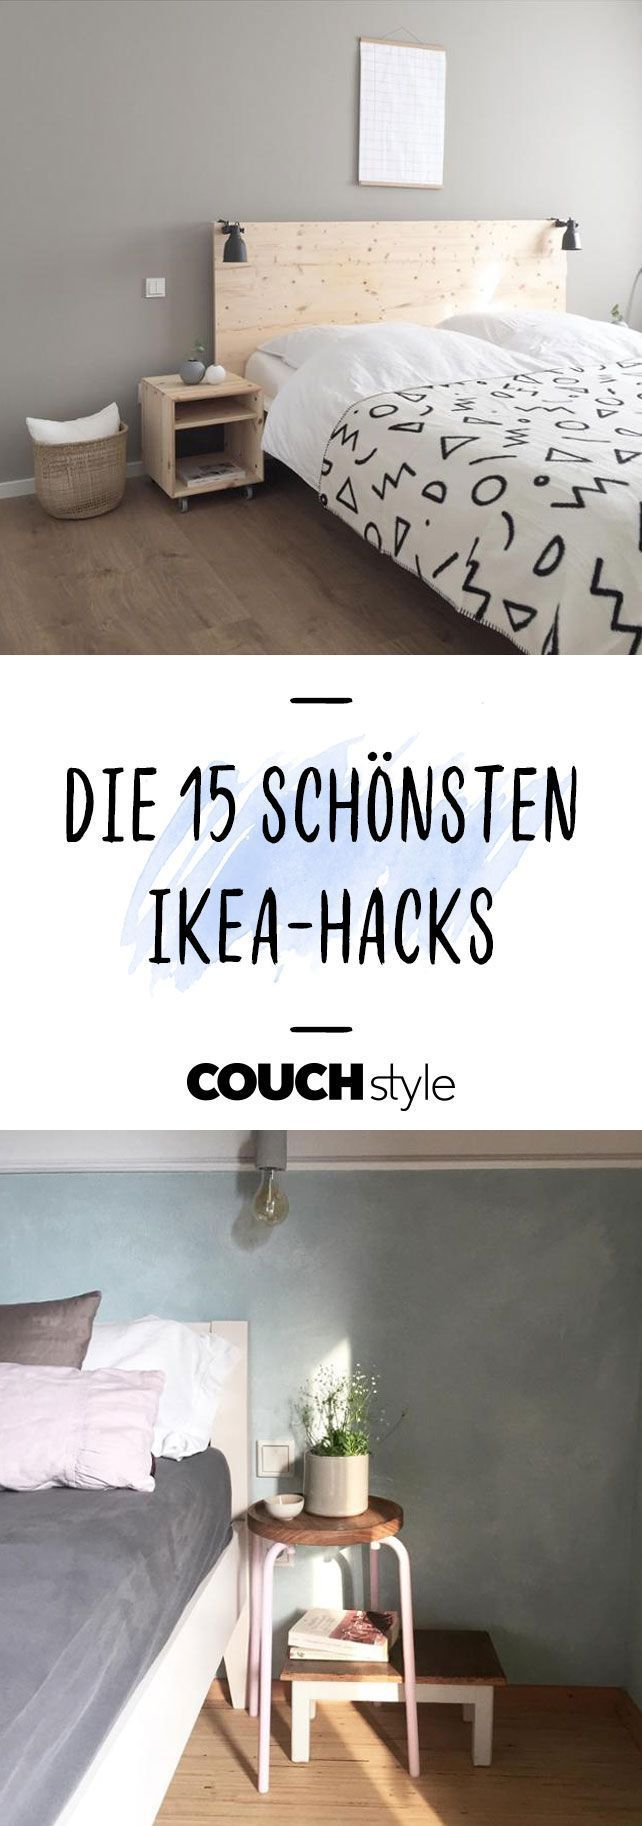 We'll show you 12 Ikea hacks that you can easily imitate at home ...